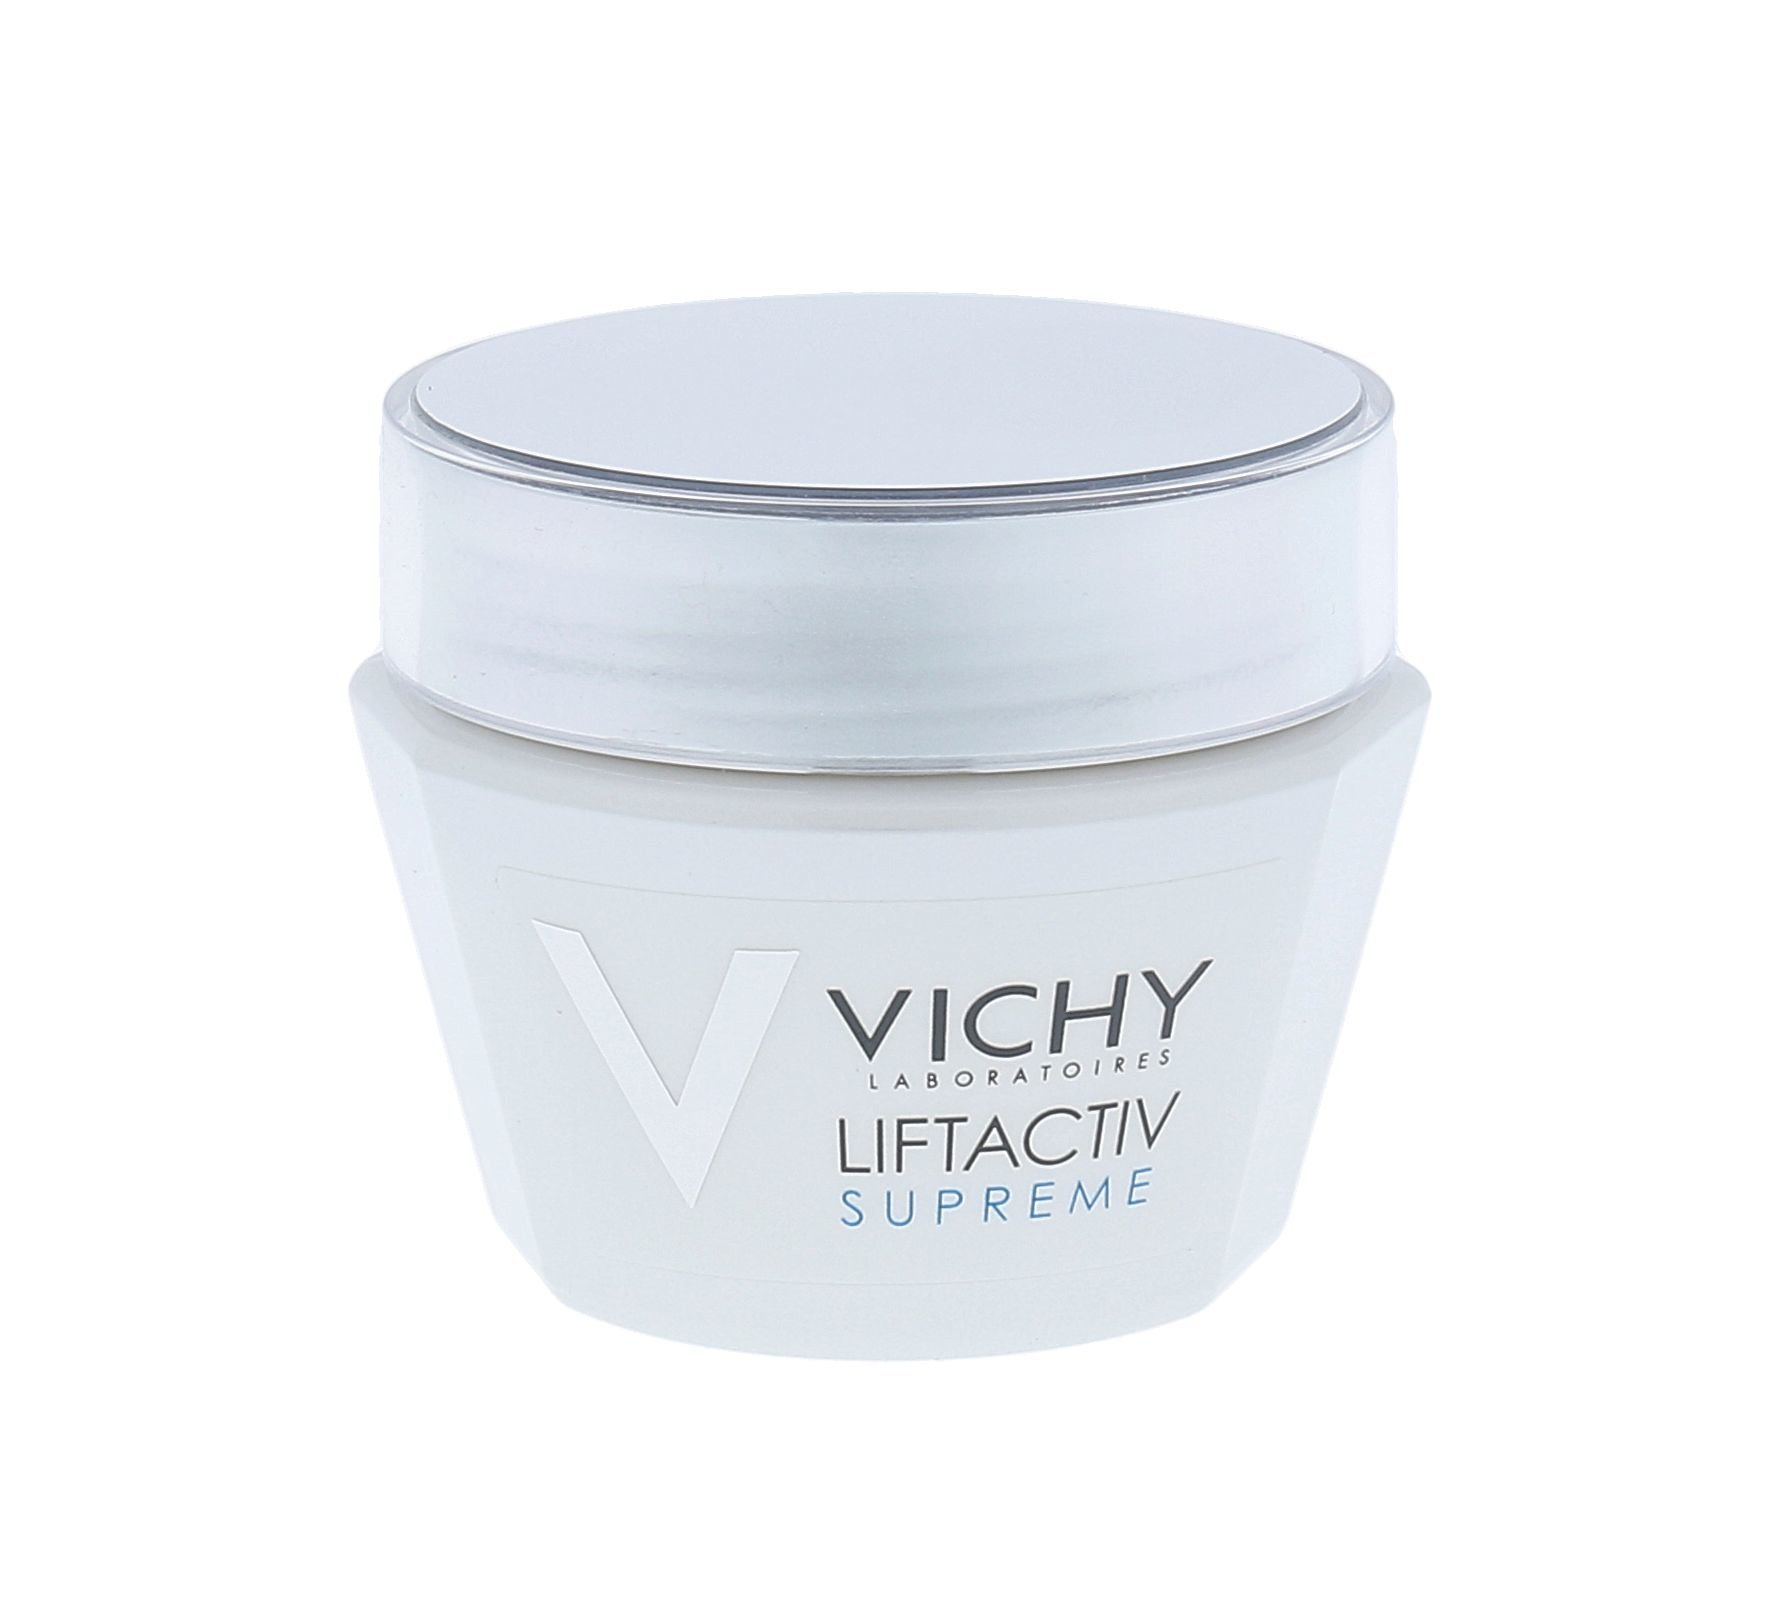 Vichy Liftactiv Supreme Day Cream Dry Skin Cosmetic 50ml